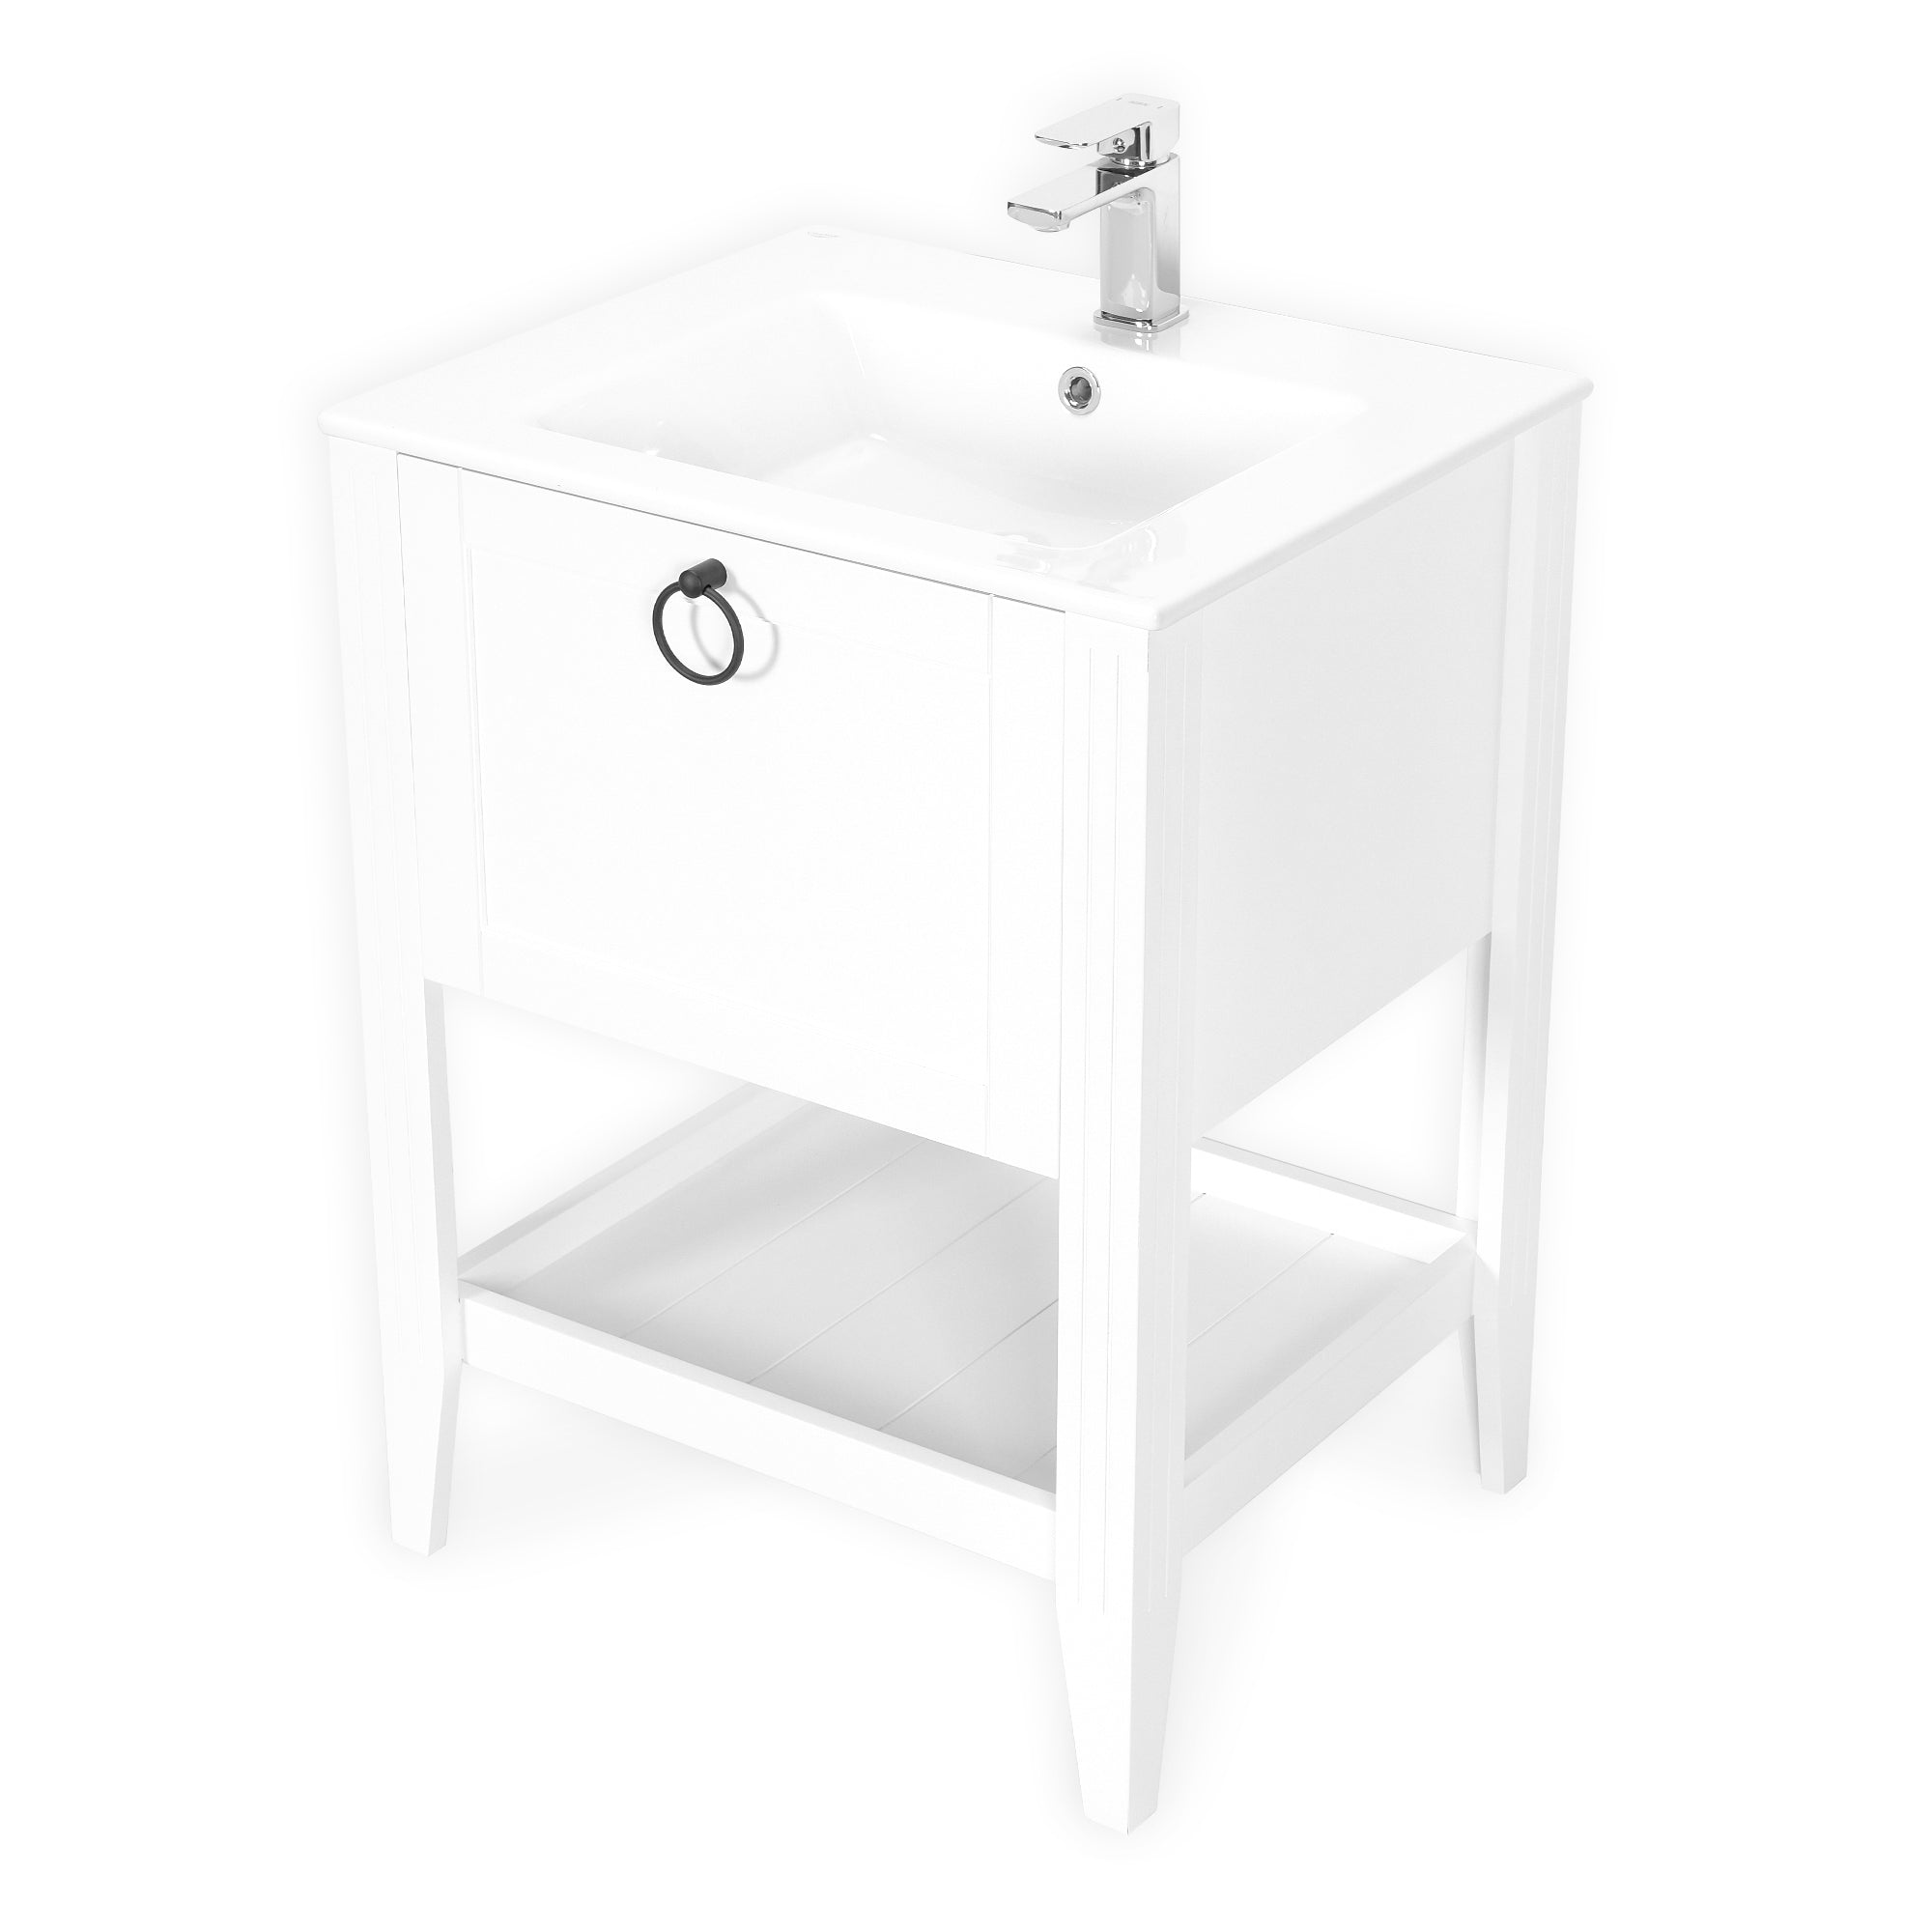 SOFIA 24 INCH FREE STANDING VANITY AND SINK COMBO WITH MATCHING MIRROR - WHITE